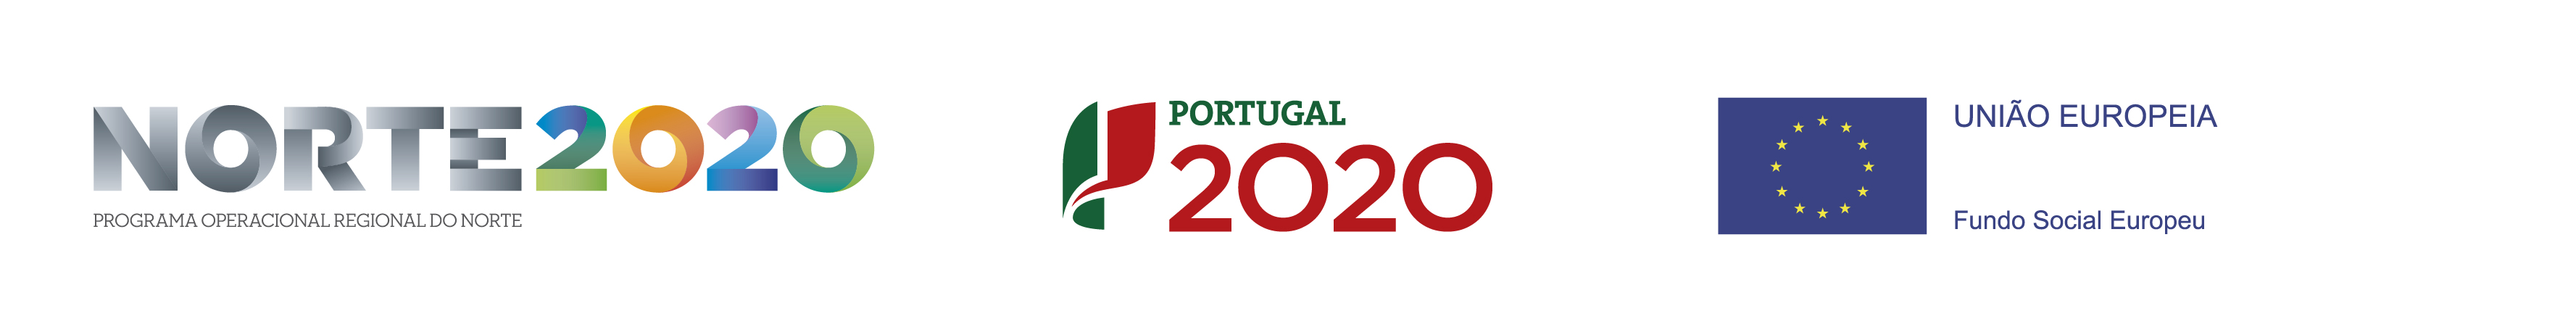 NORTE2020 barra fse  NORTE2020 barra fse  NORTE2020 barra fse